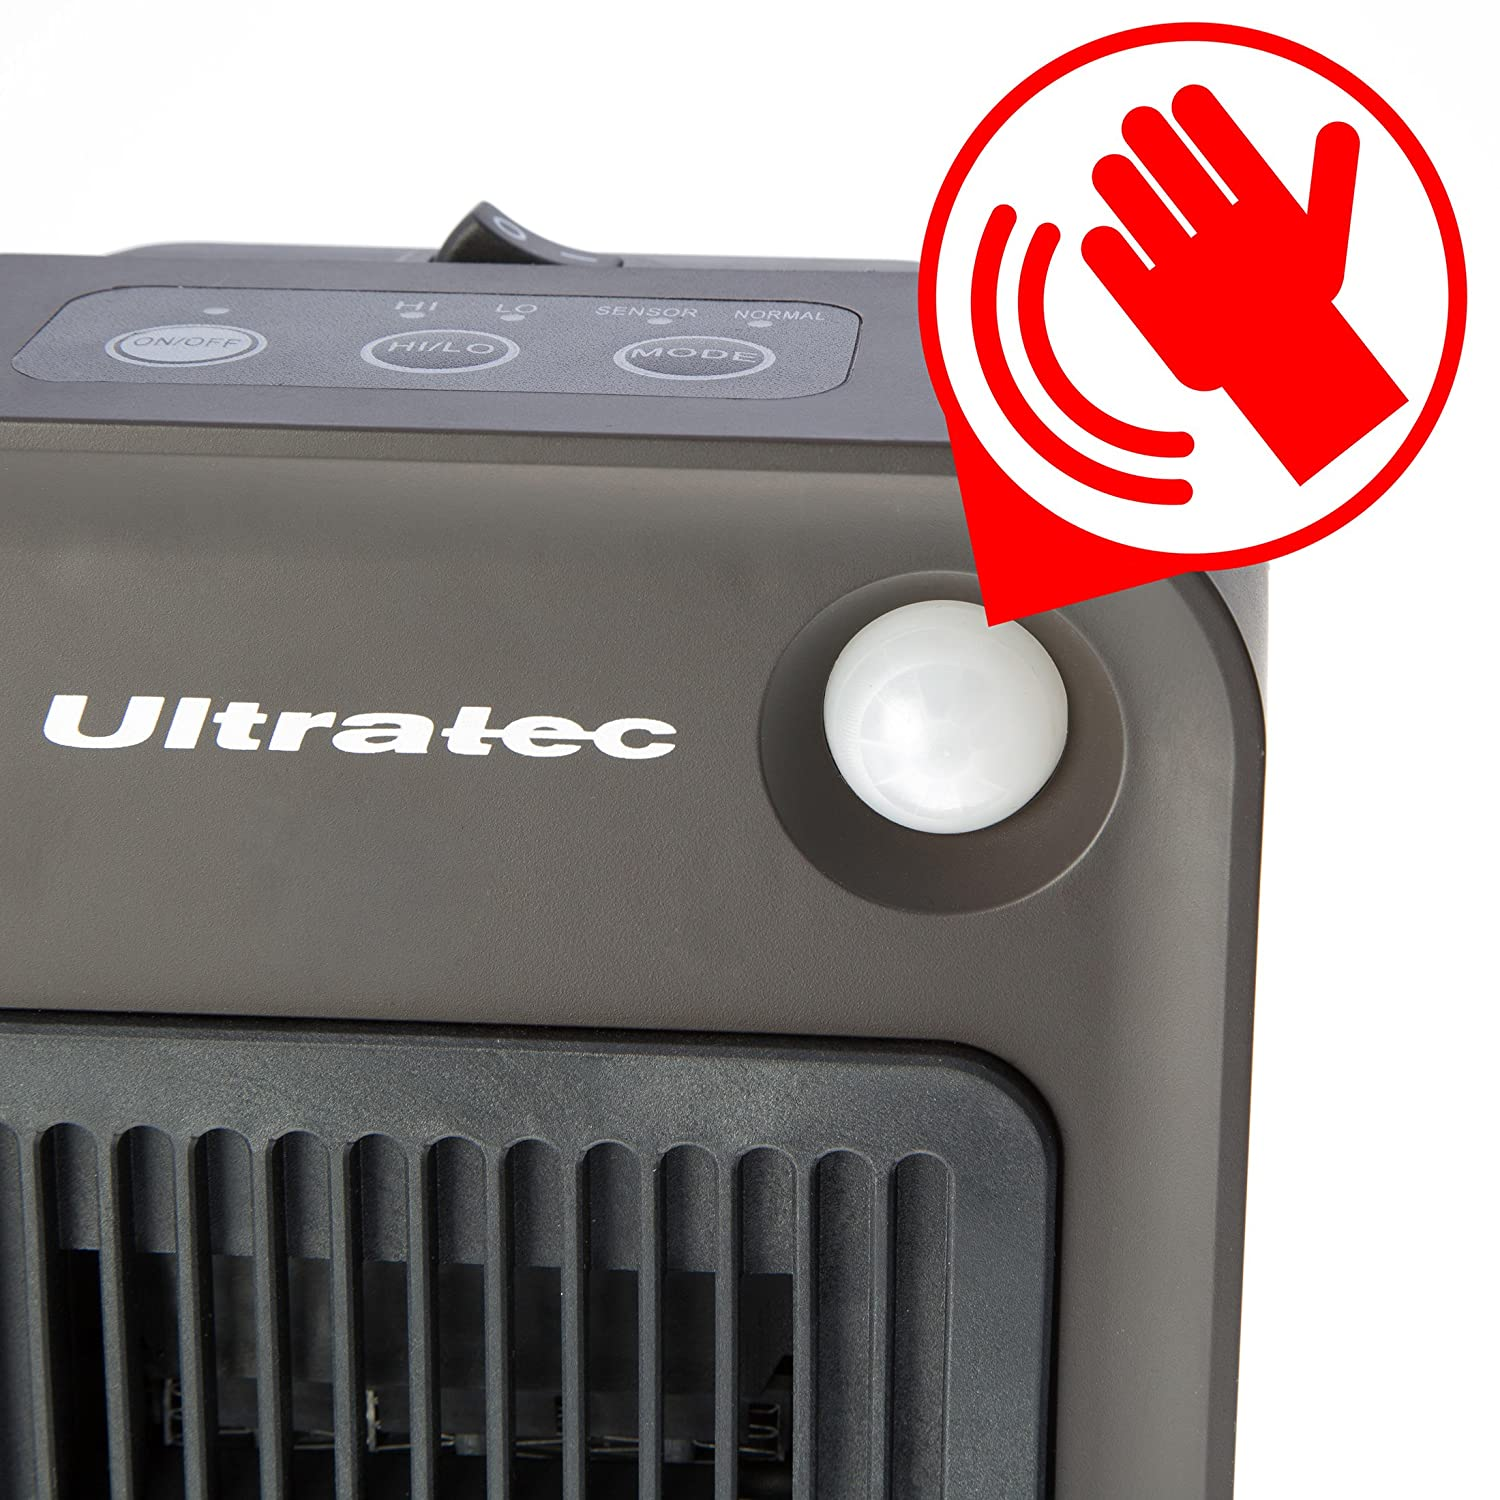 Ultranatura Radiador de Cuarzo 2 Niveles, Montaje de Pared Variable, 1800 W, 331400000126: Amazon.es: Hogar